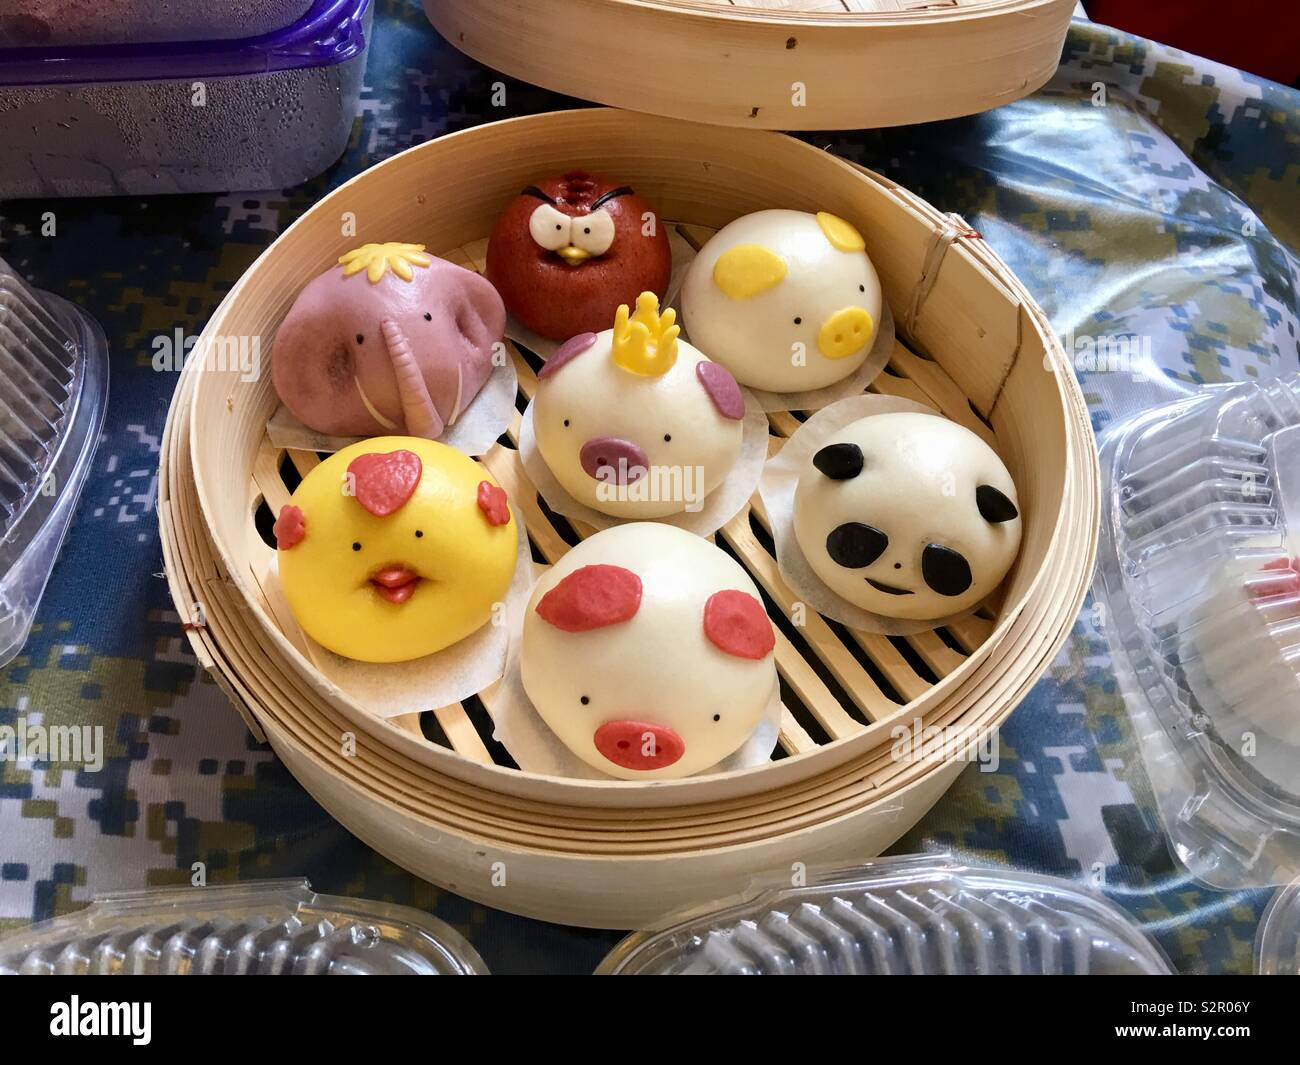 animal-shaped-dim-sum-steamed-dumplings-